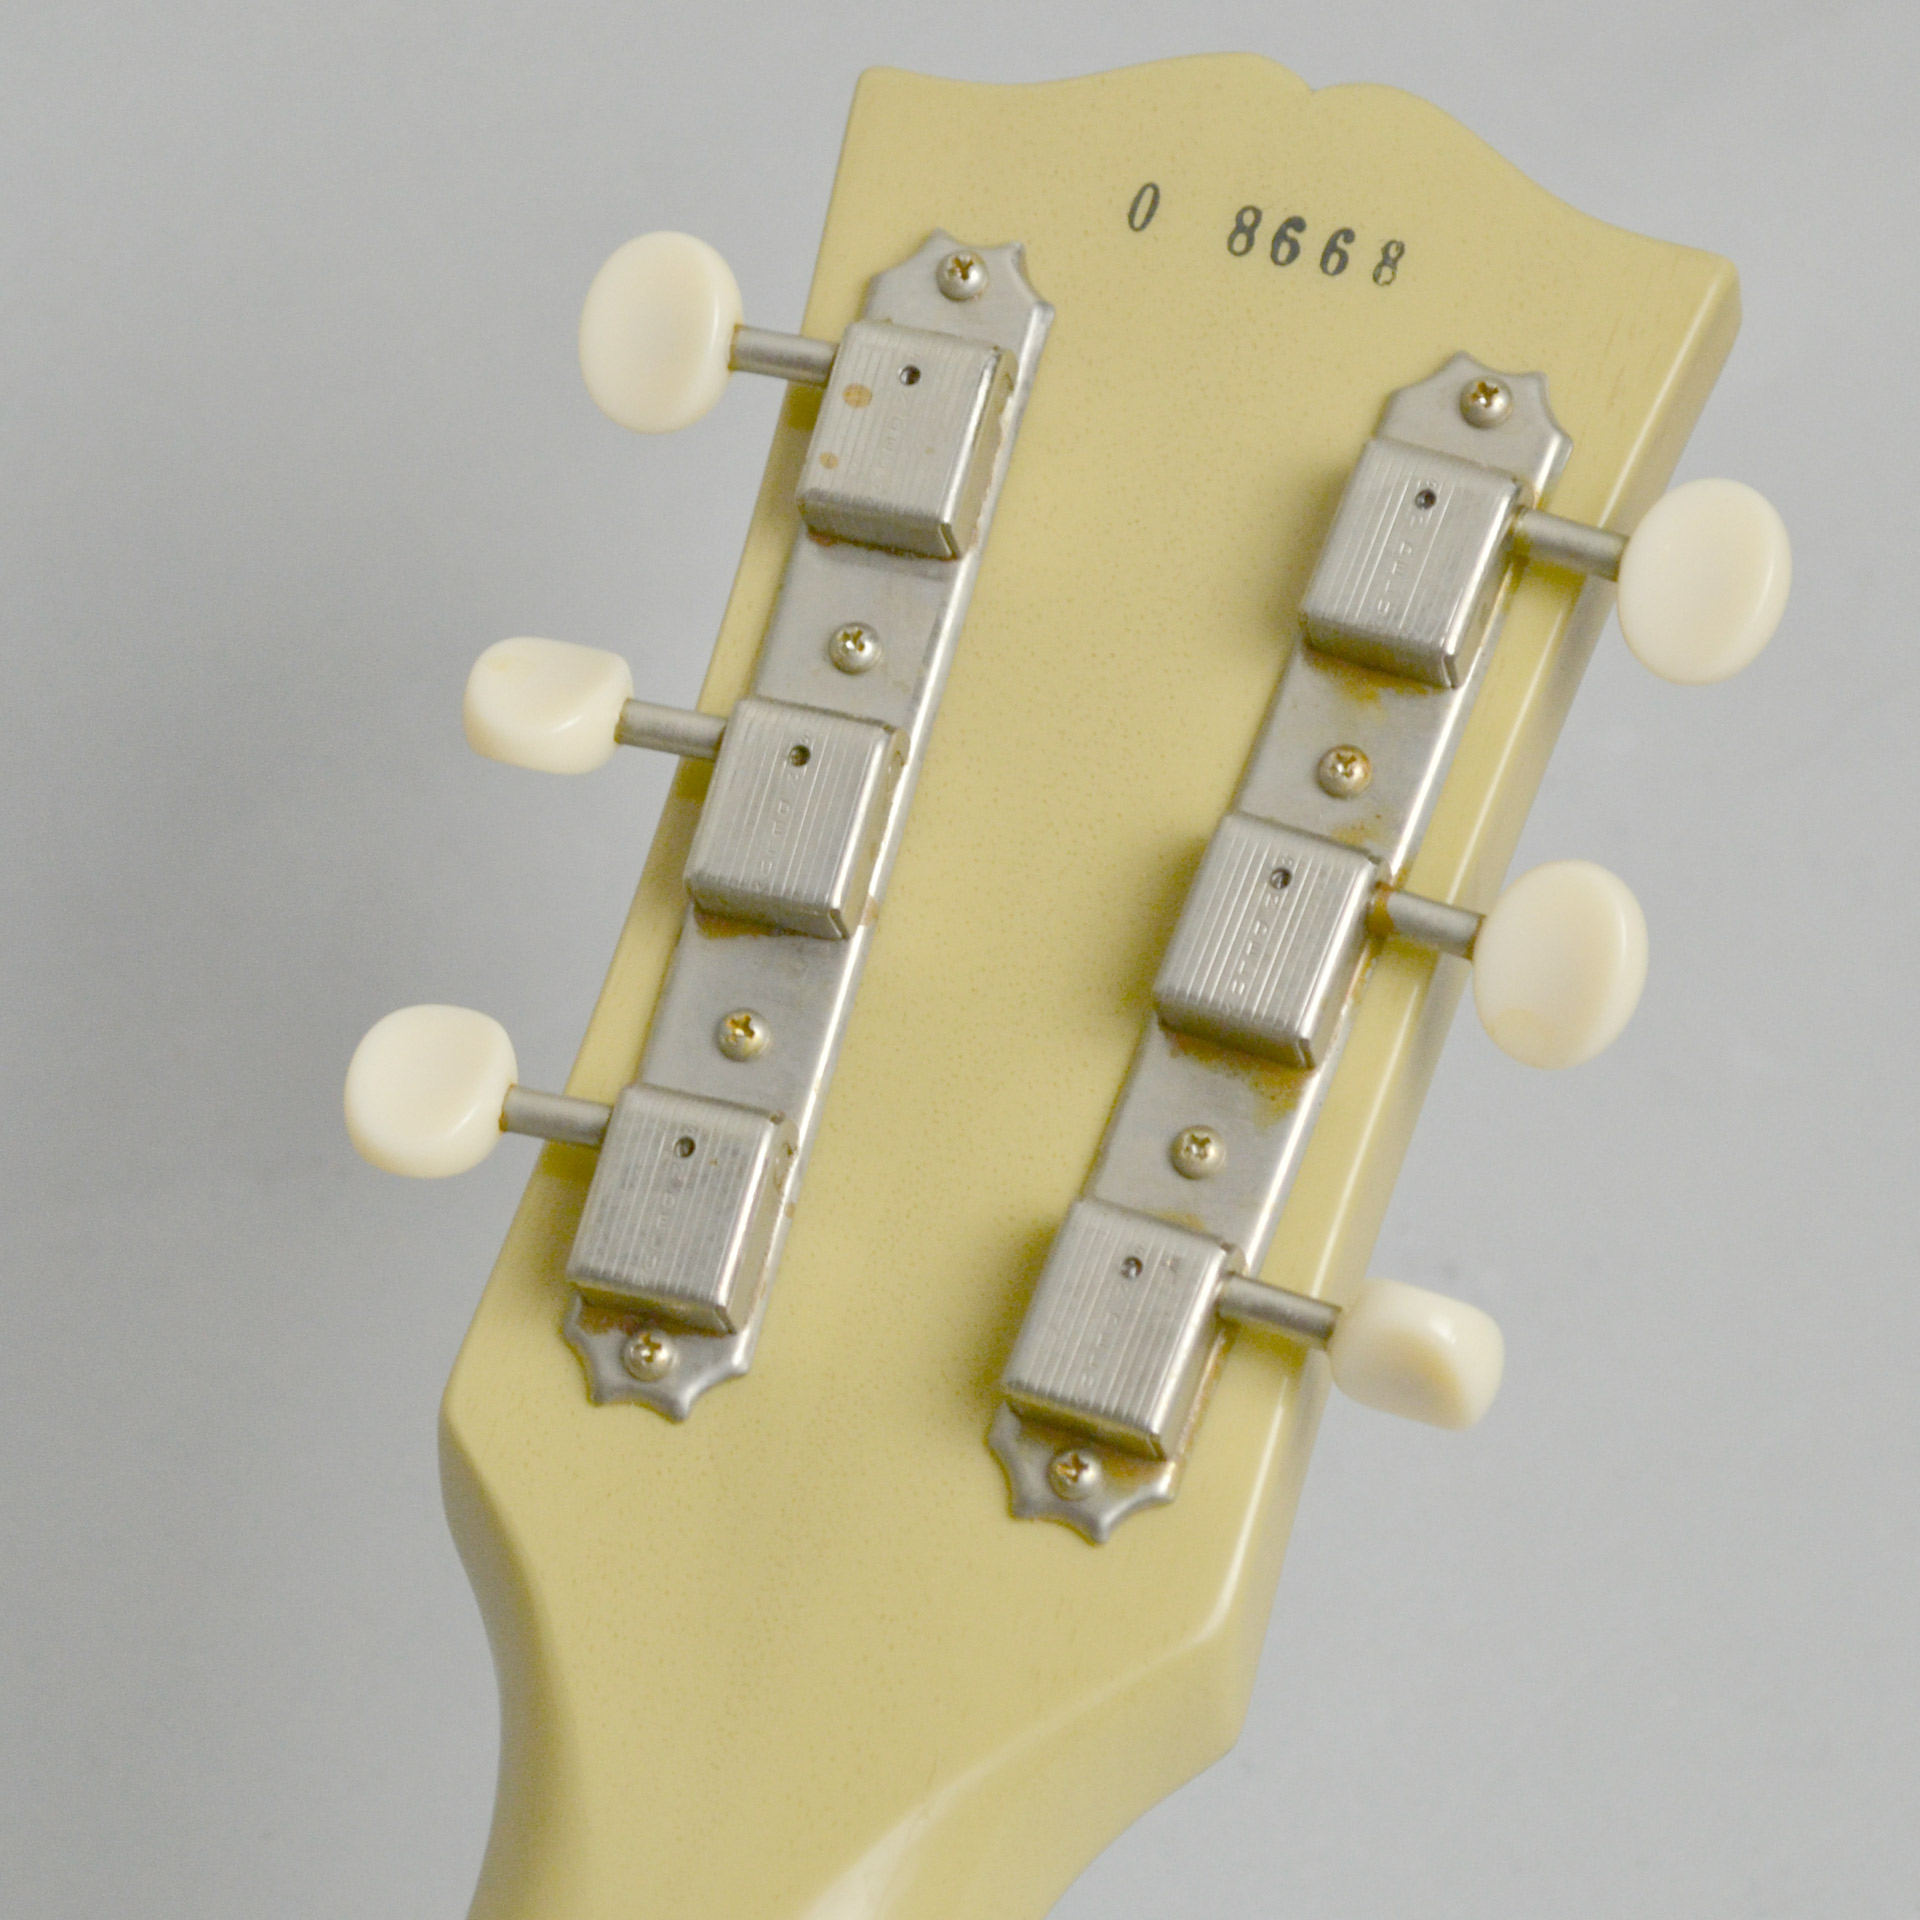 1960 Les Paul Special SC VOS TVYのケース・その他画像